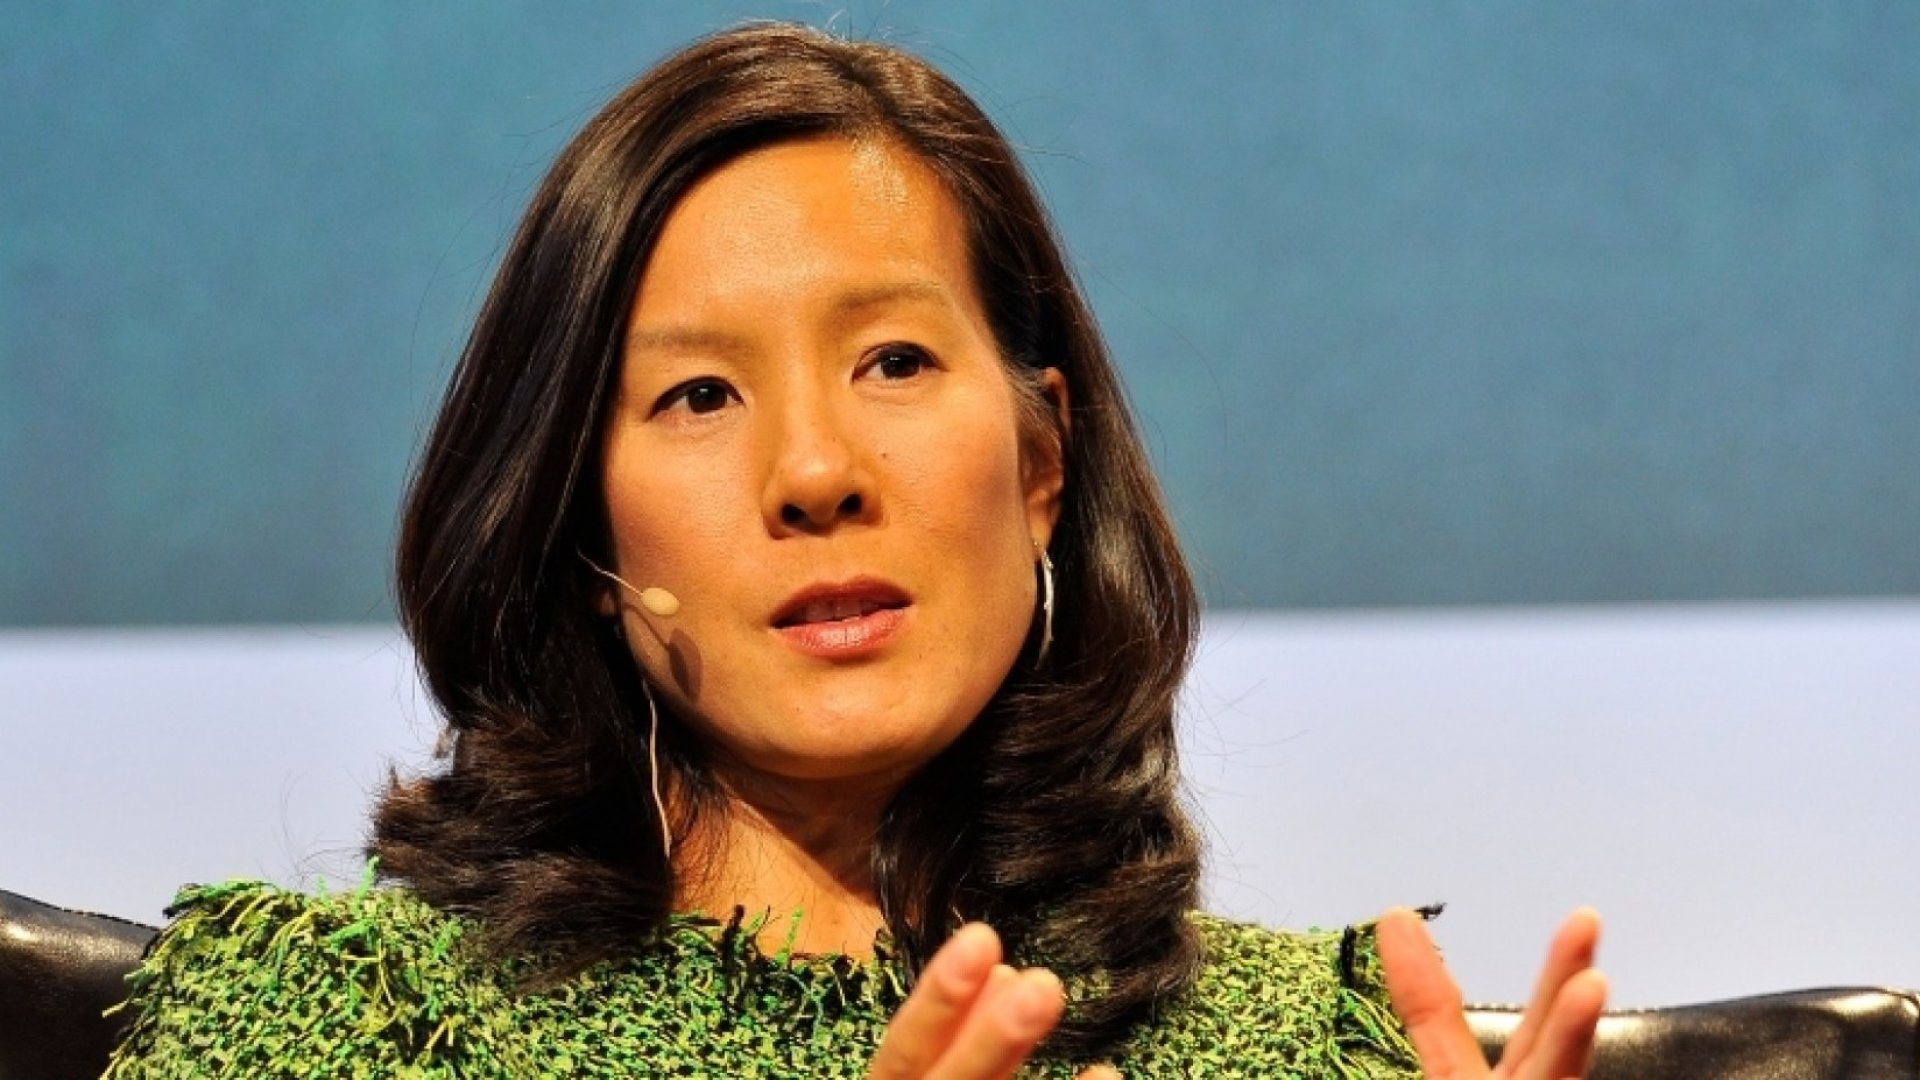 Cowboy Ventures' Aileen Lee: There Isn't Nearly Enough Diversity in Venture Capital